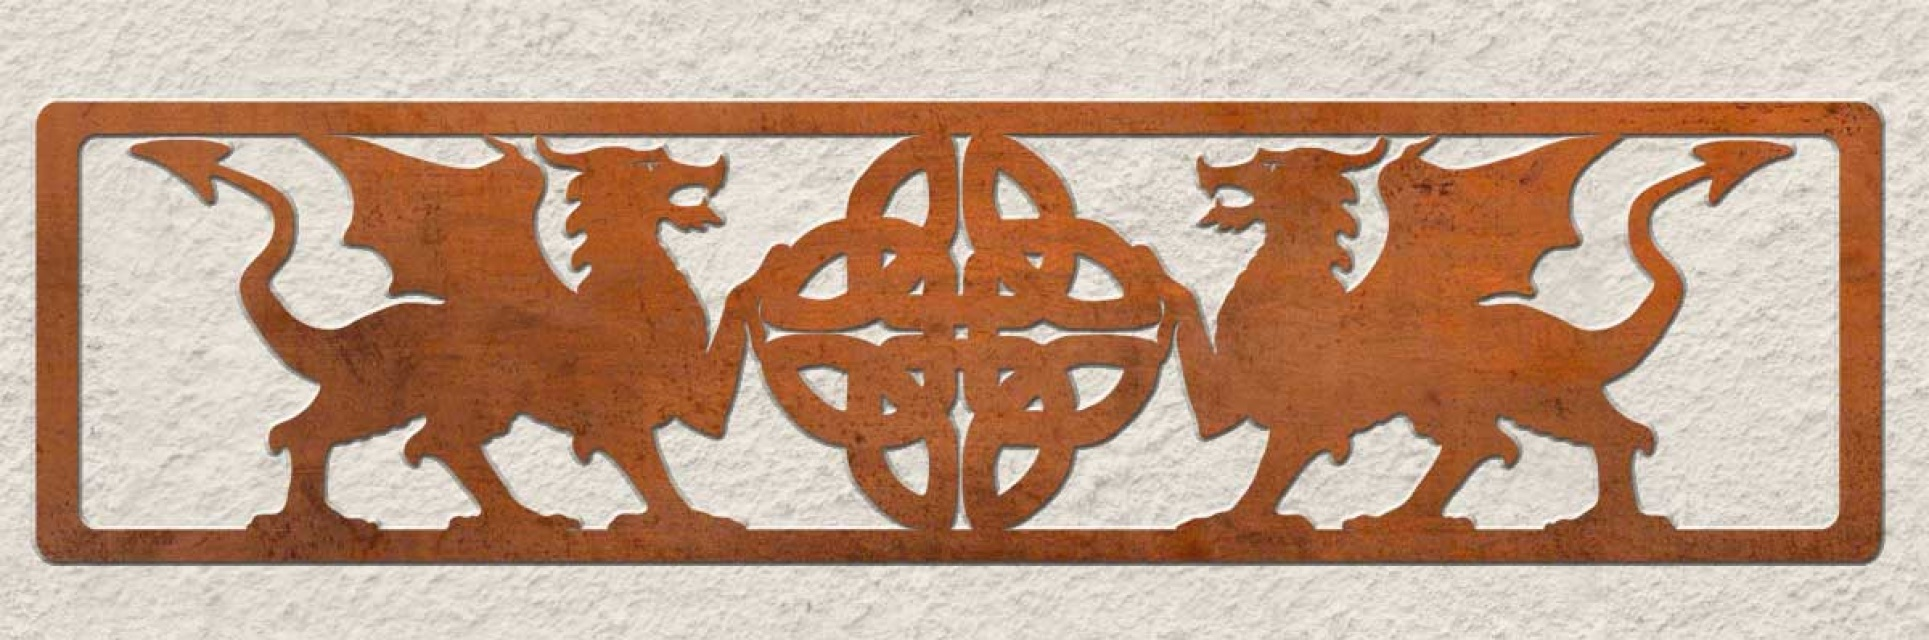 Metal Wall Art Celtic Dragons For Home Or Garden